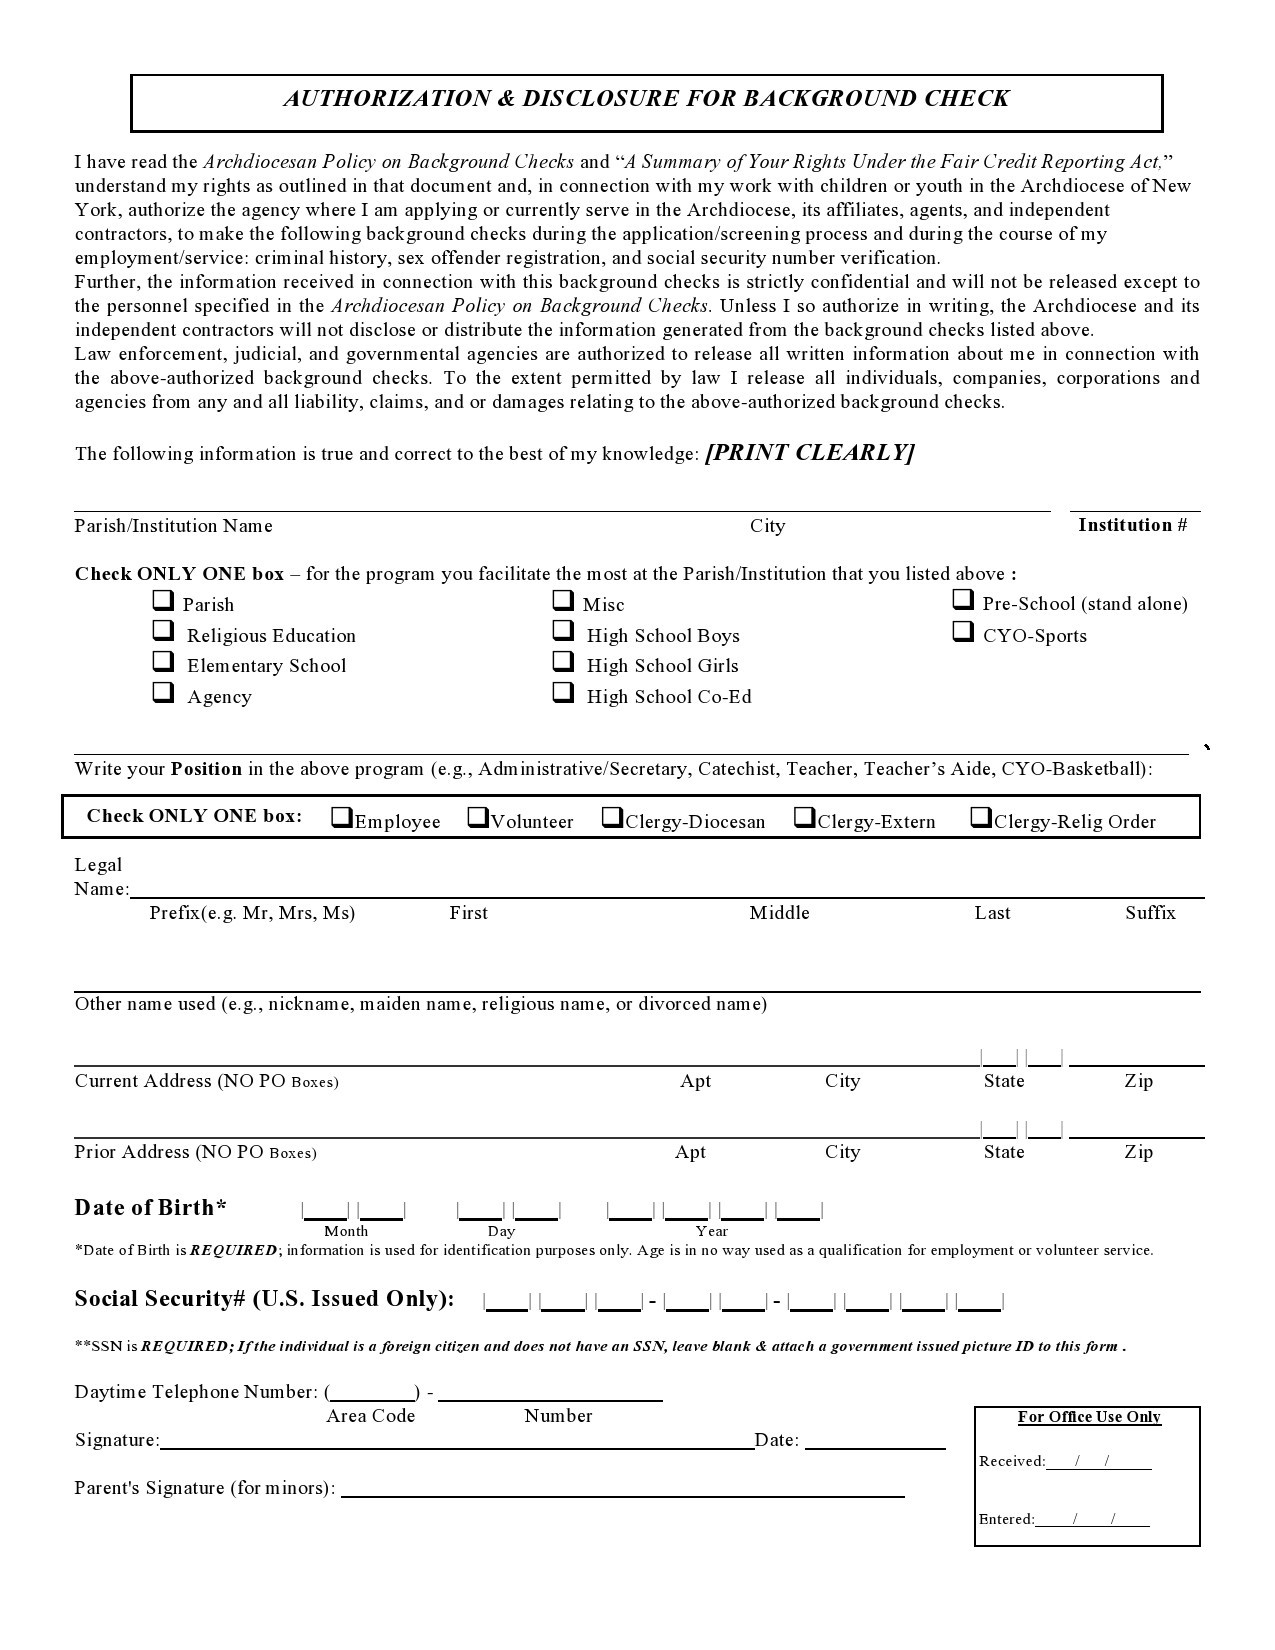 Free background check form 06